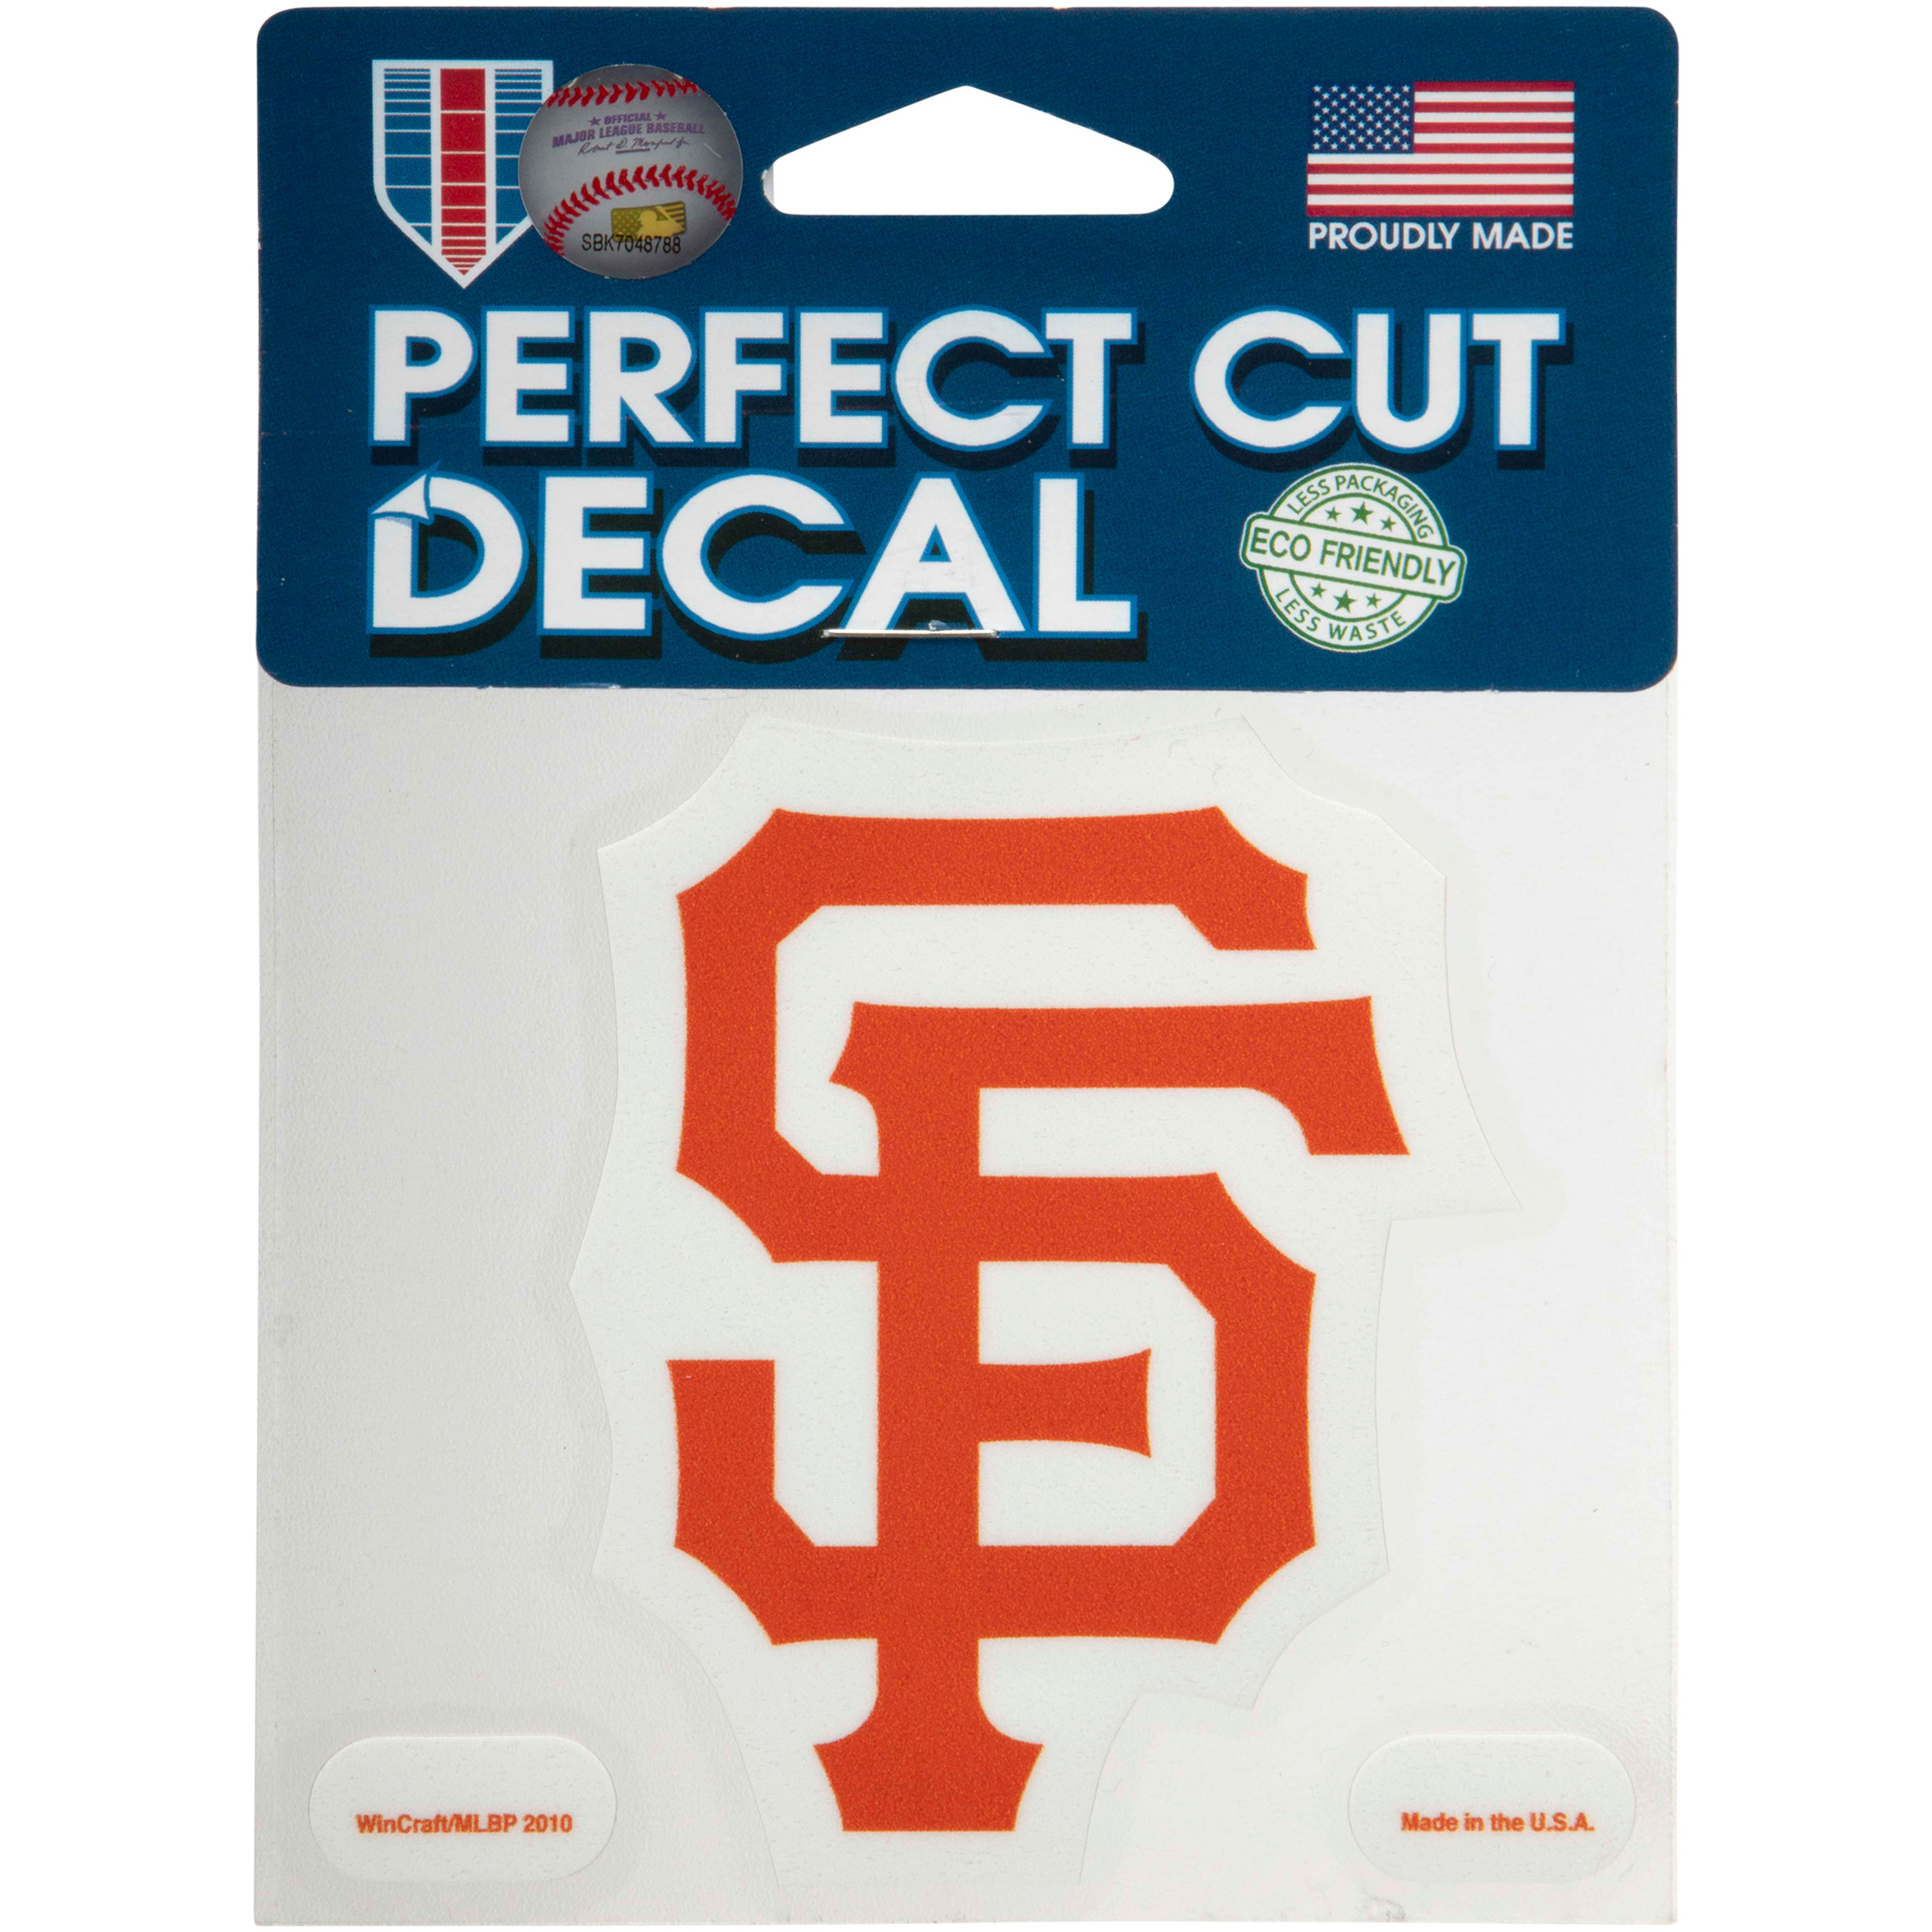 WinCraft San Francisco Giants 4'' x 4'' Color Perfect Cut Decal - Orange - No Size